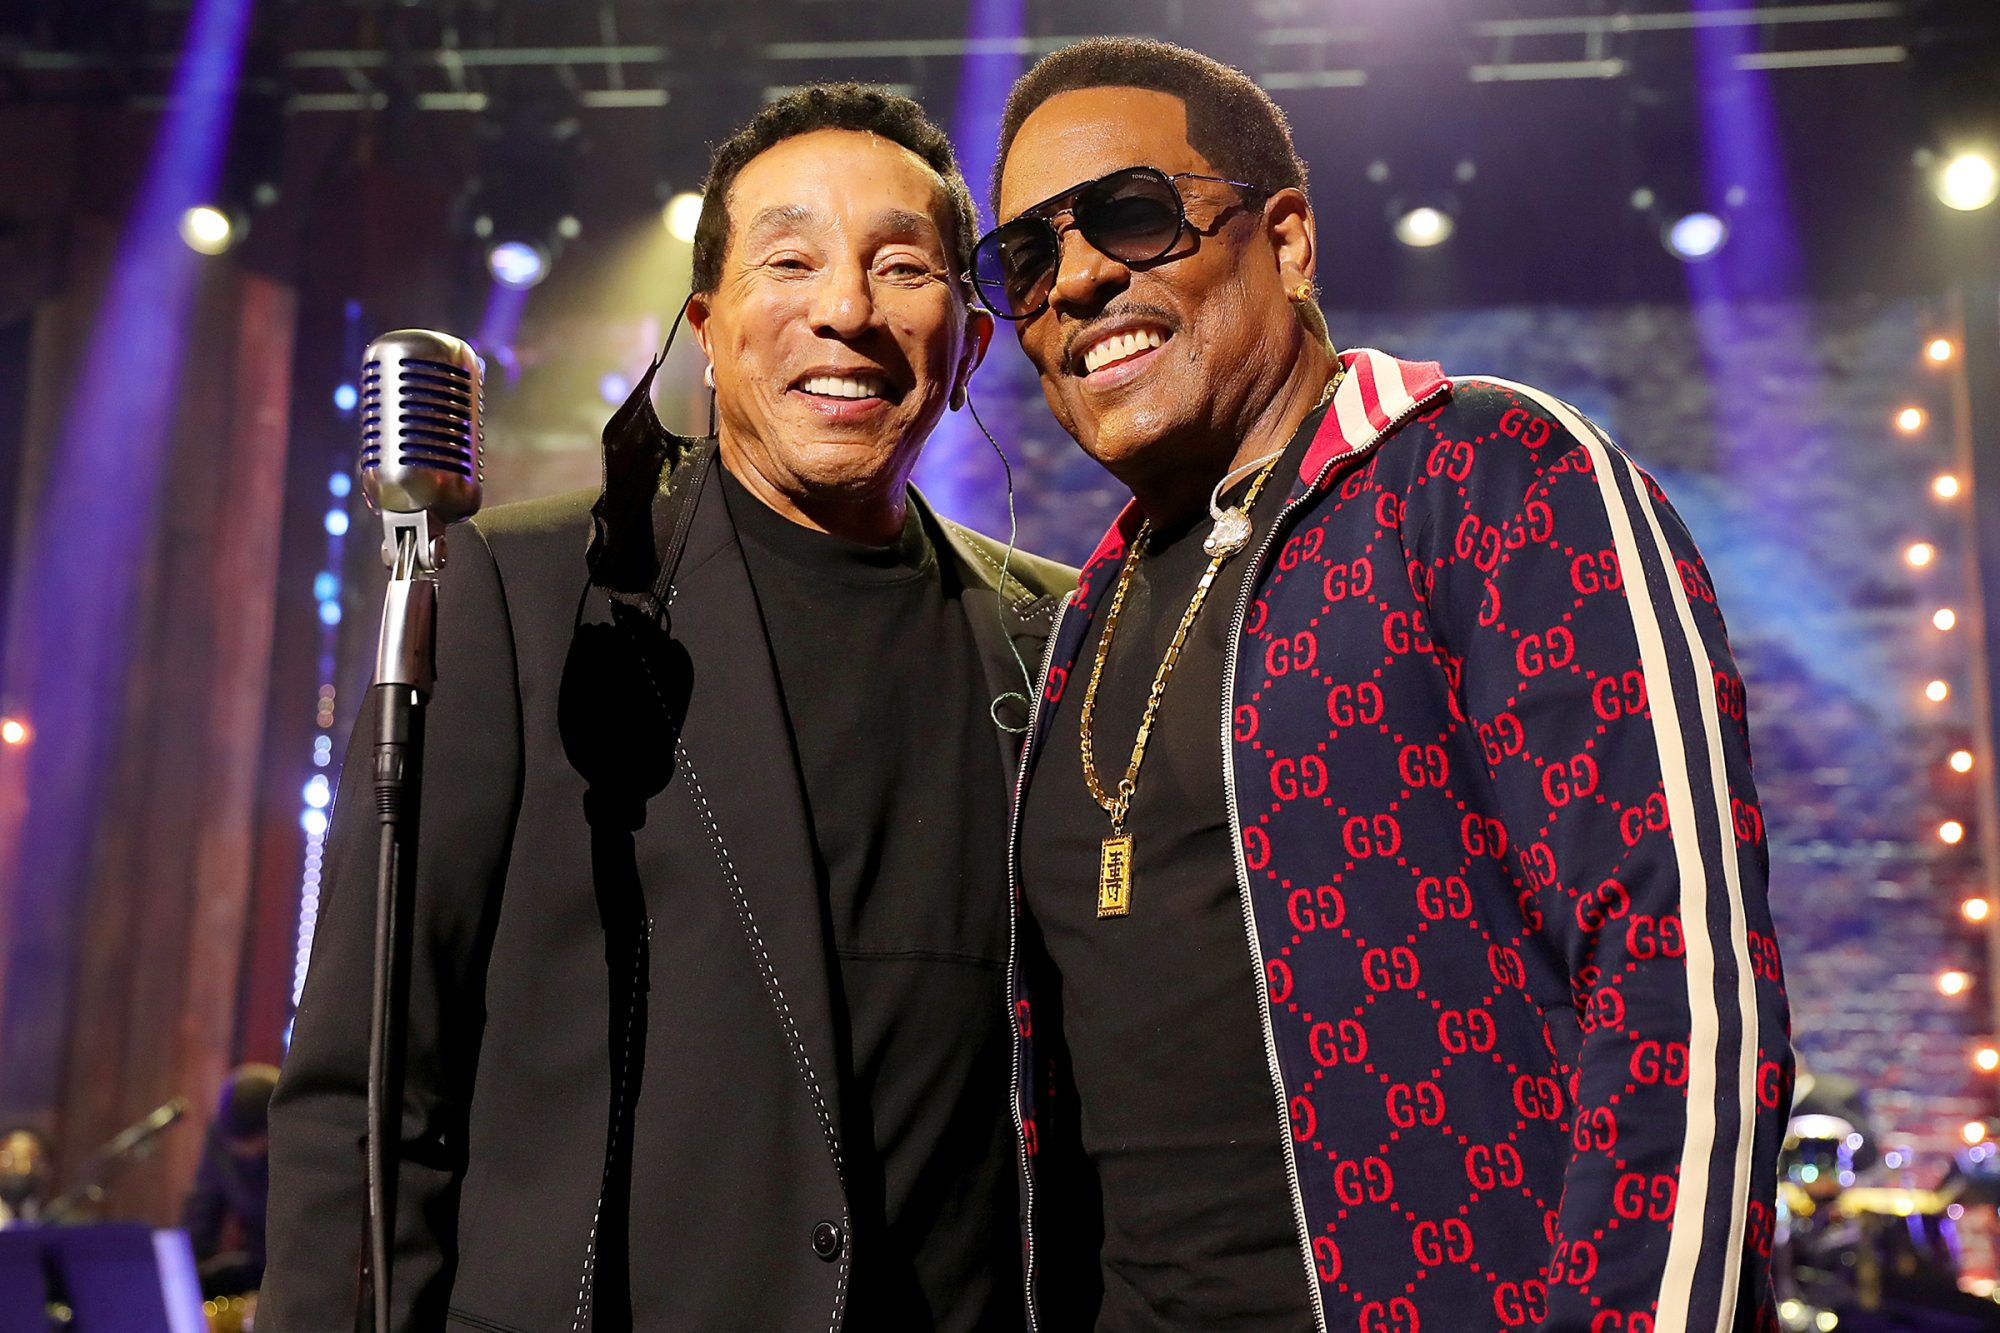 Smokey Robinson and Charlie Wilson attend the 2020 Soul Train Awards presented by BET